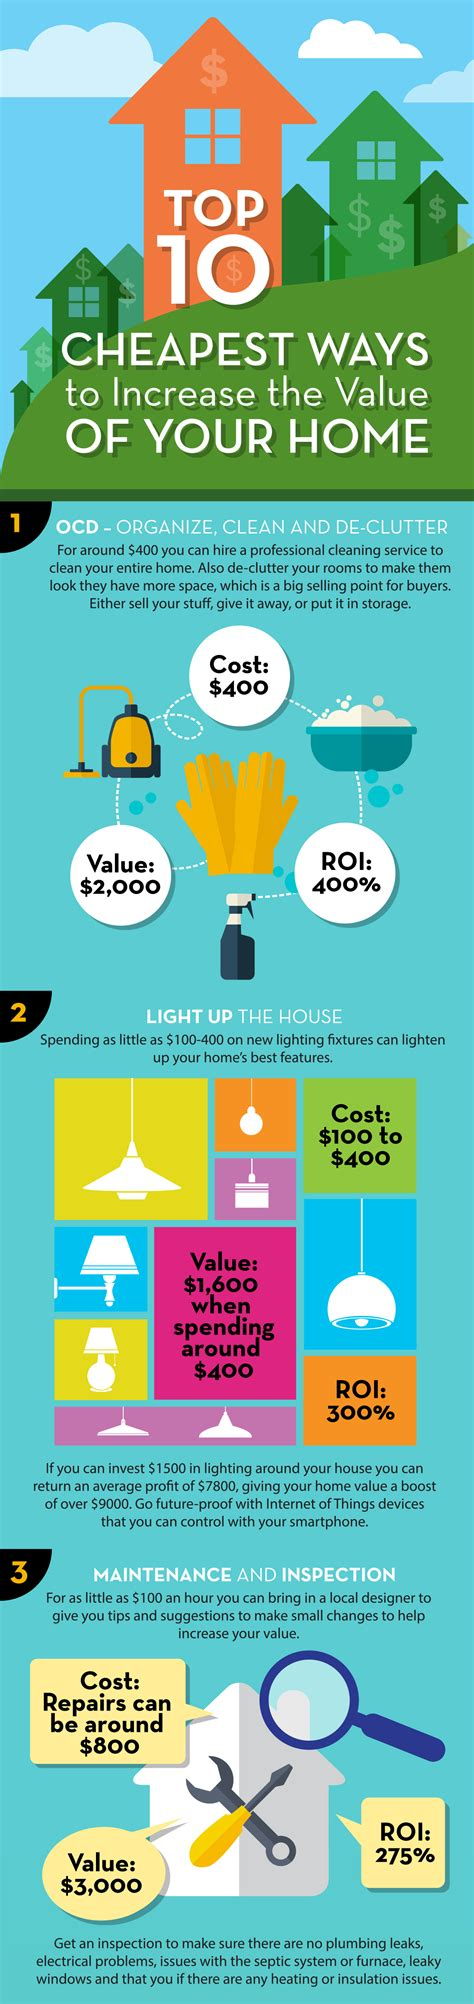 top 10 cheapest ways to increase the value of your house